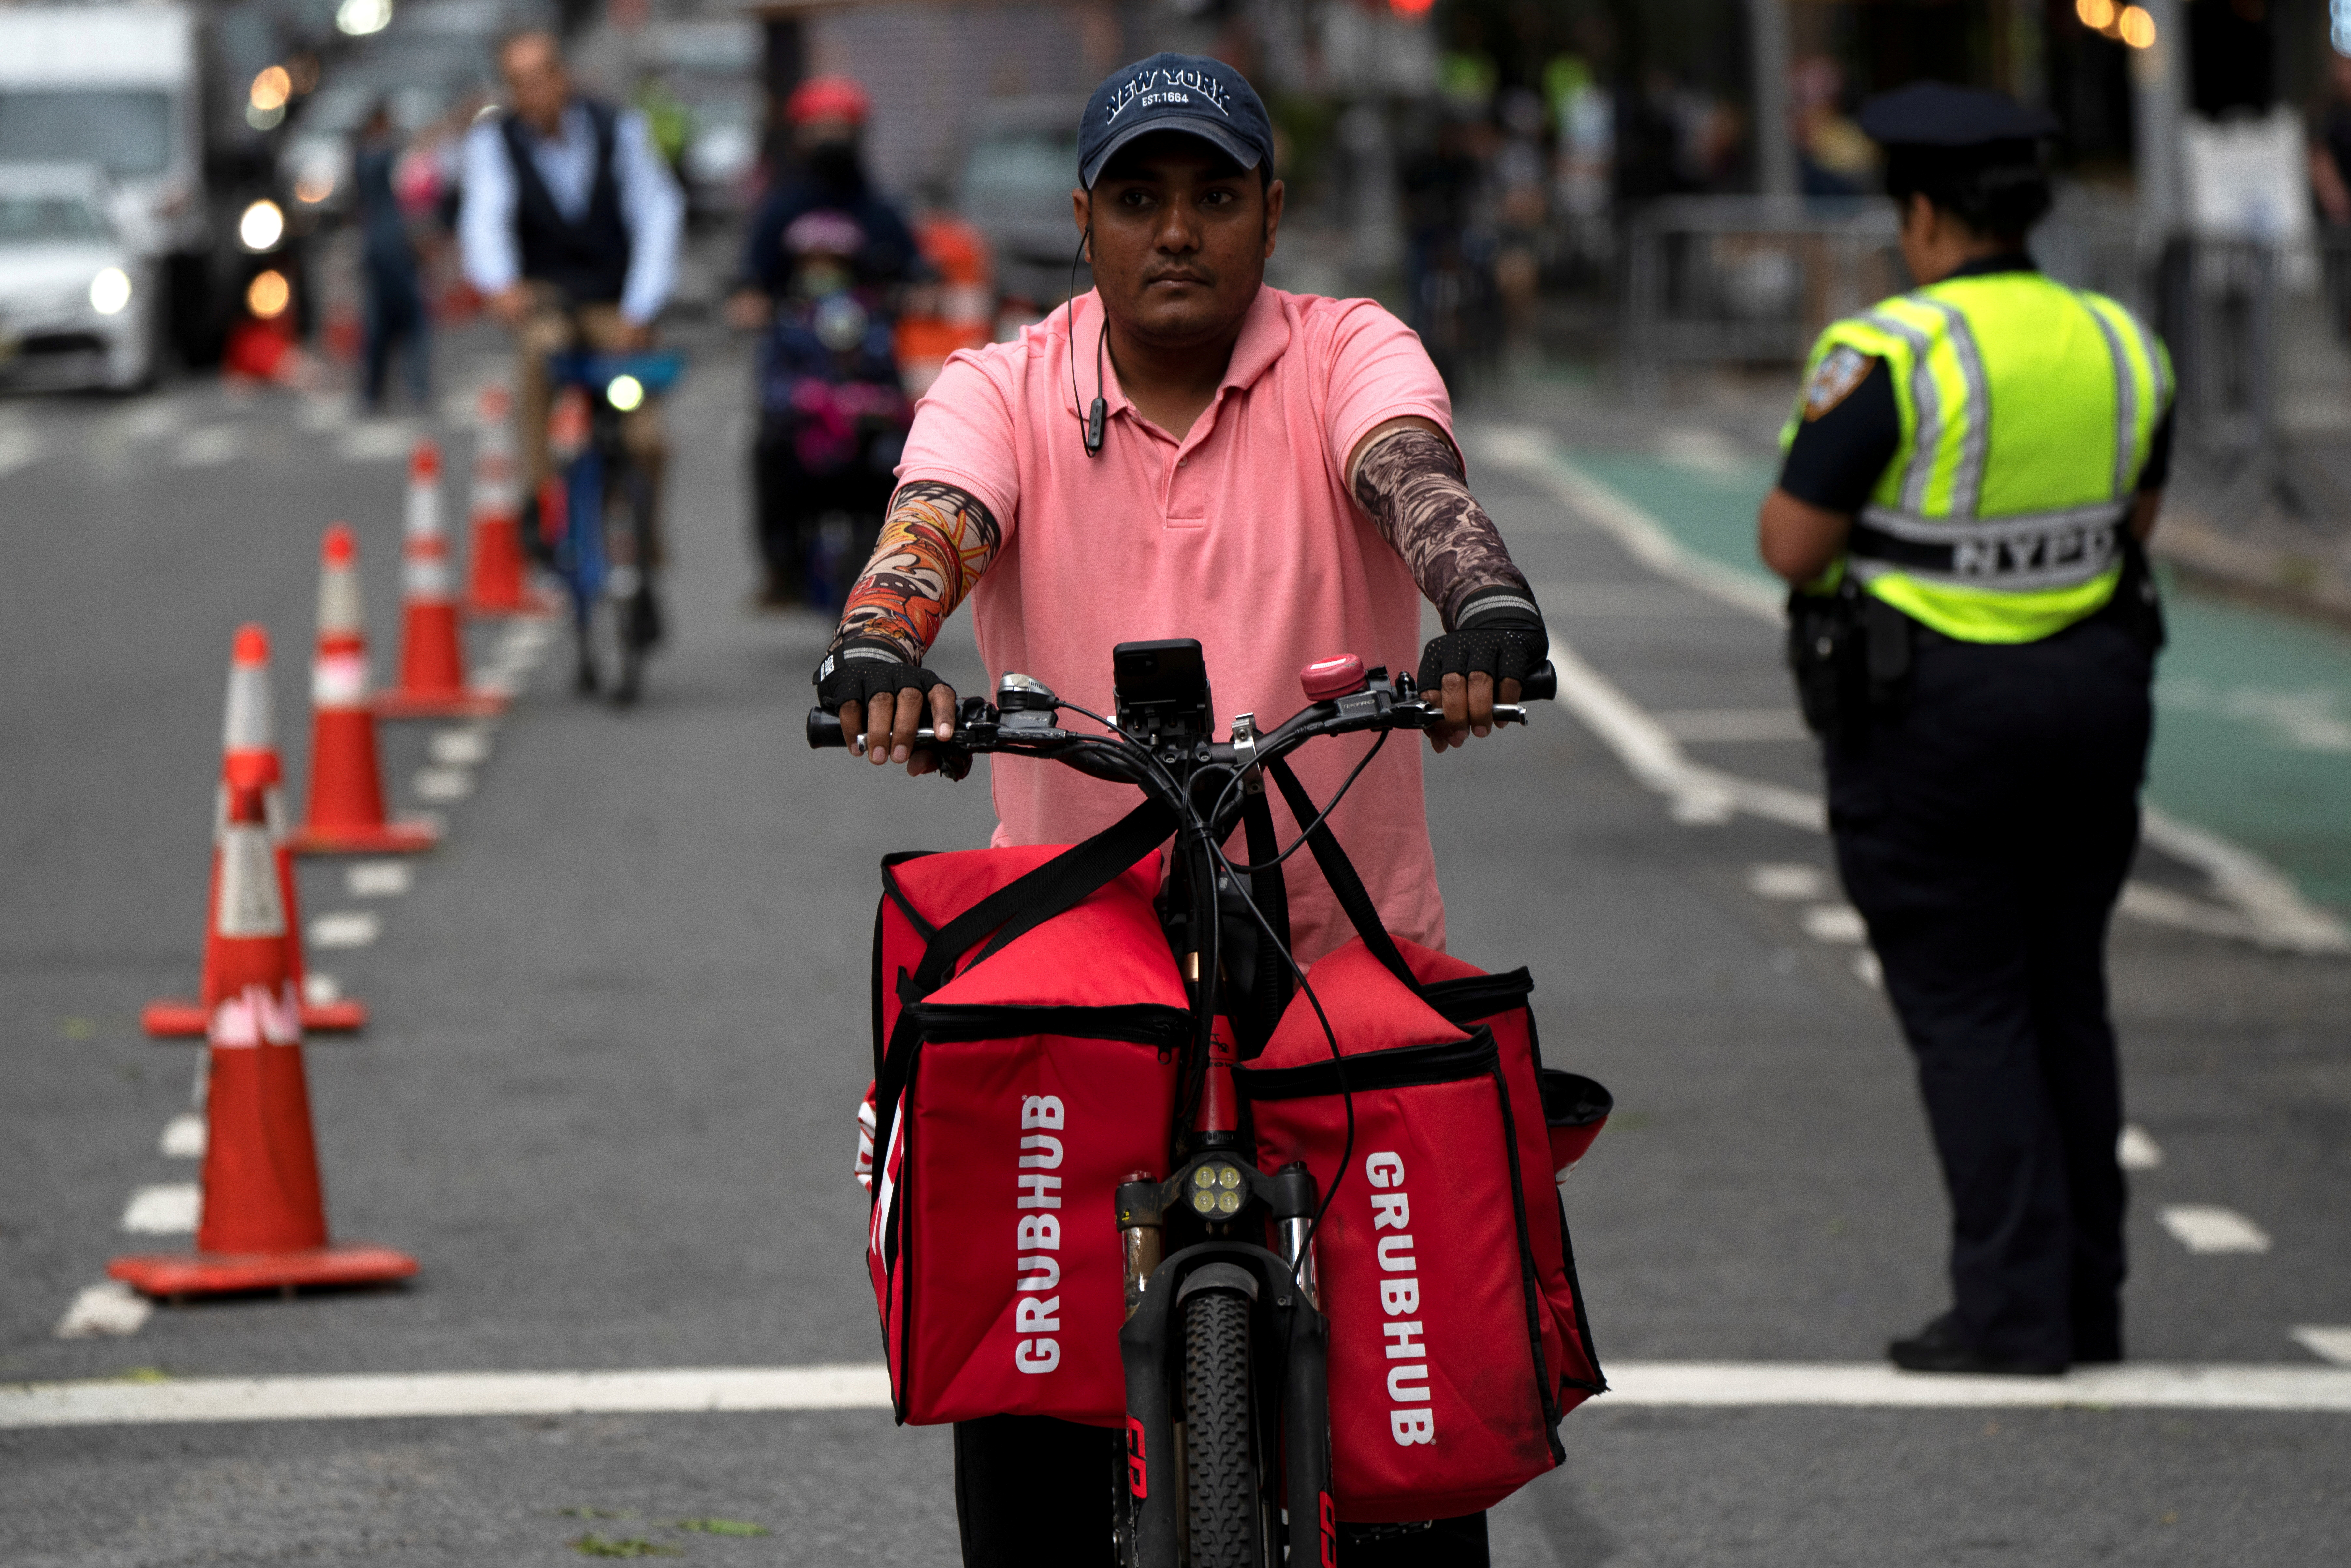 A delivery worker is pictured on the street in New York City, New York, U.S., September 23, 2021.  REUTERS/David 'Dee' Delgado/File Photo